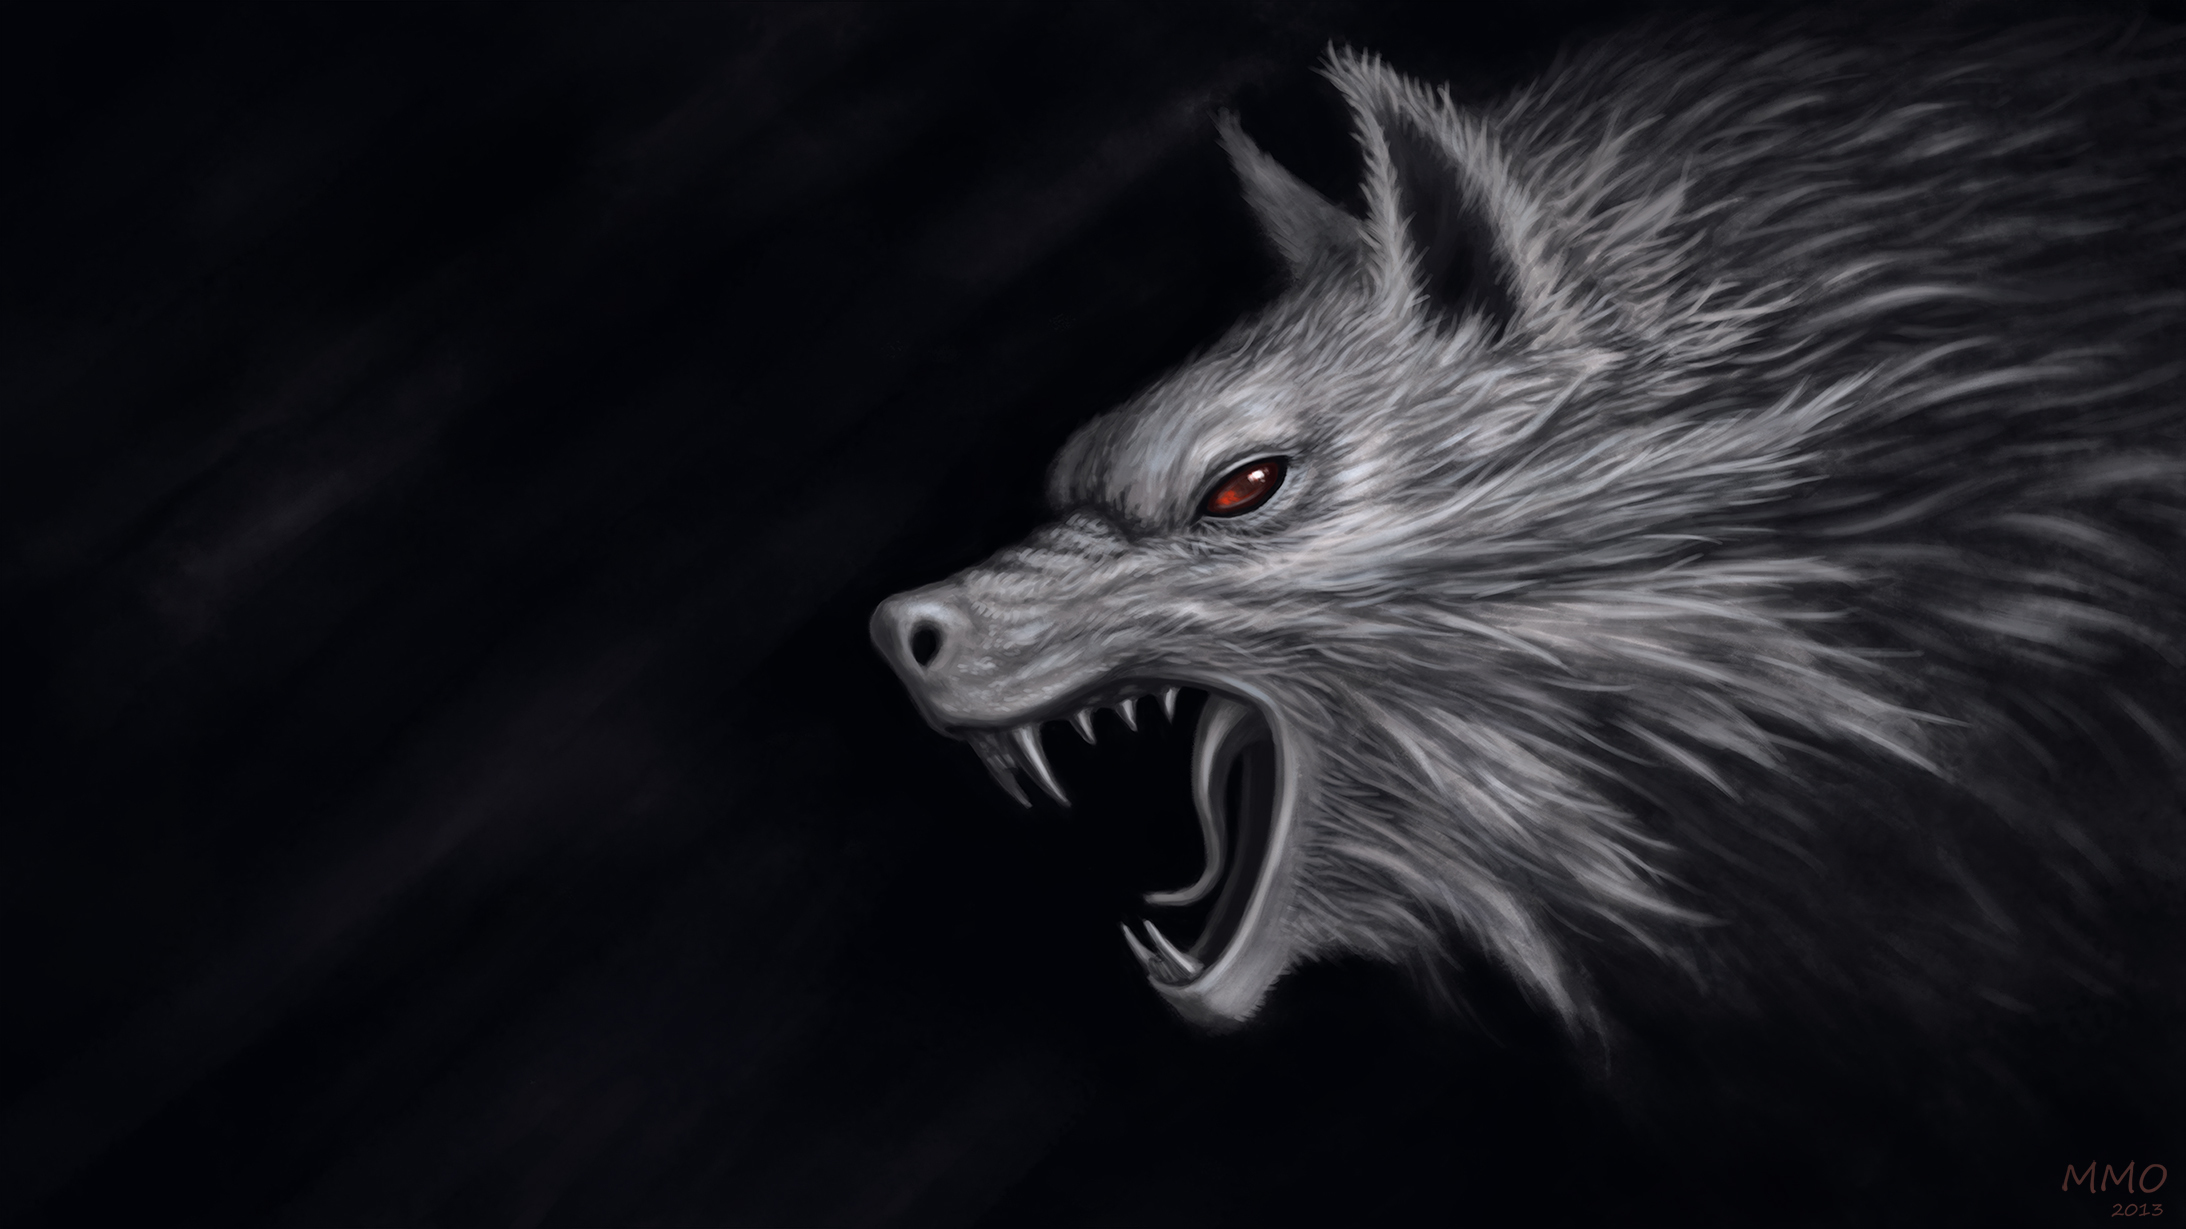 Wolf HD Wallpapers Backgrounds 2186x1229